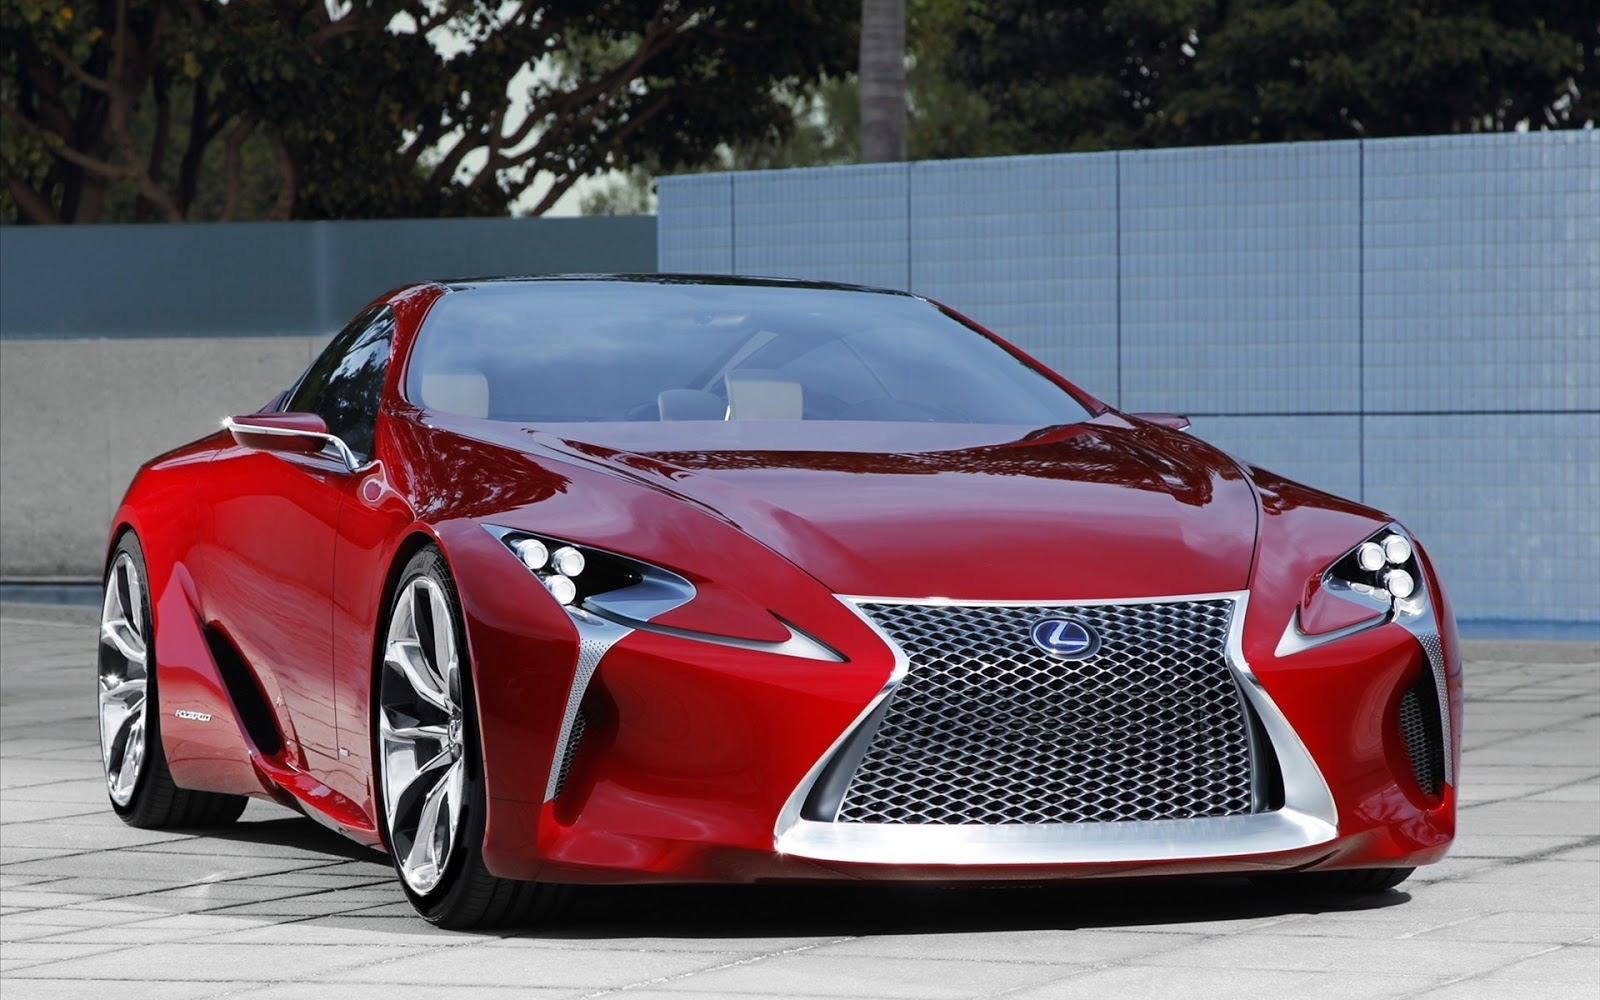 Wallpaper Name Lexus Canada Red Cars Wallpapers Best Resolution 1280x720 Hd